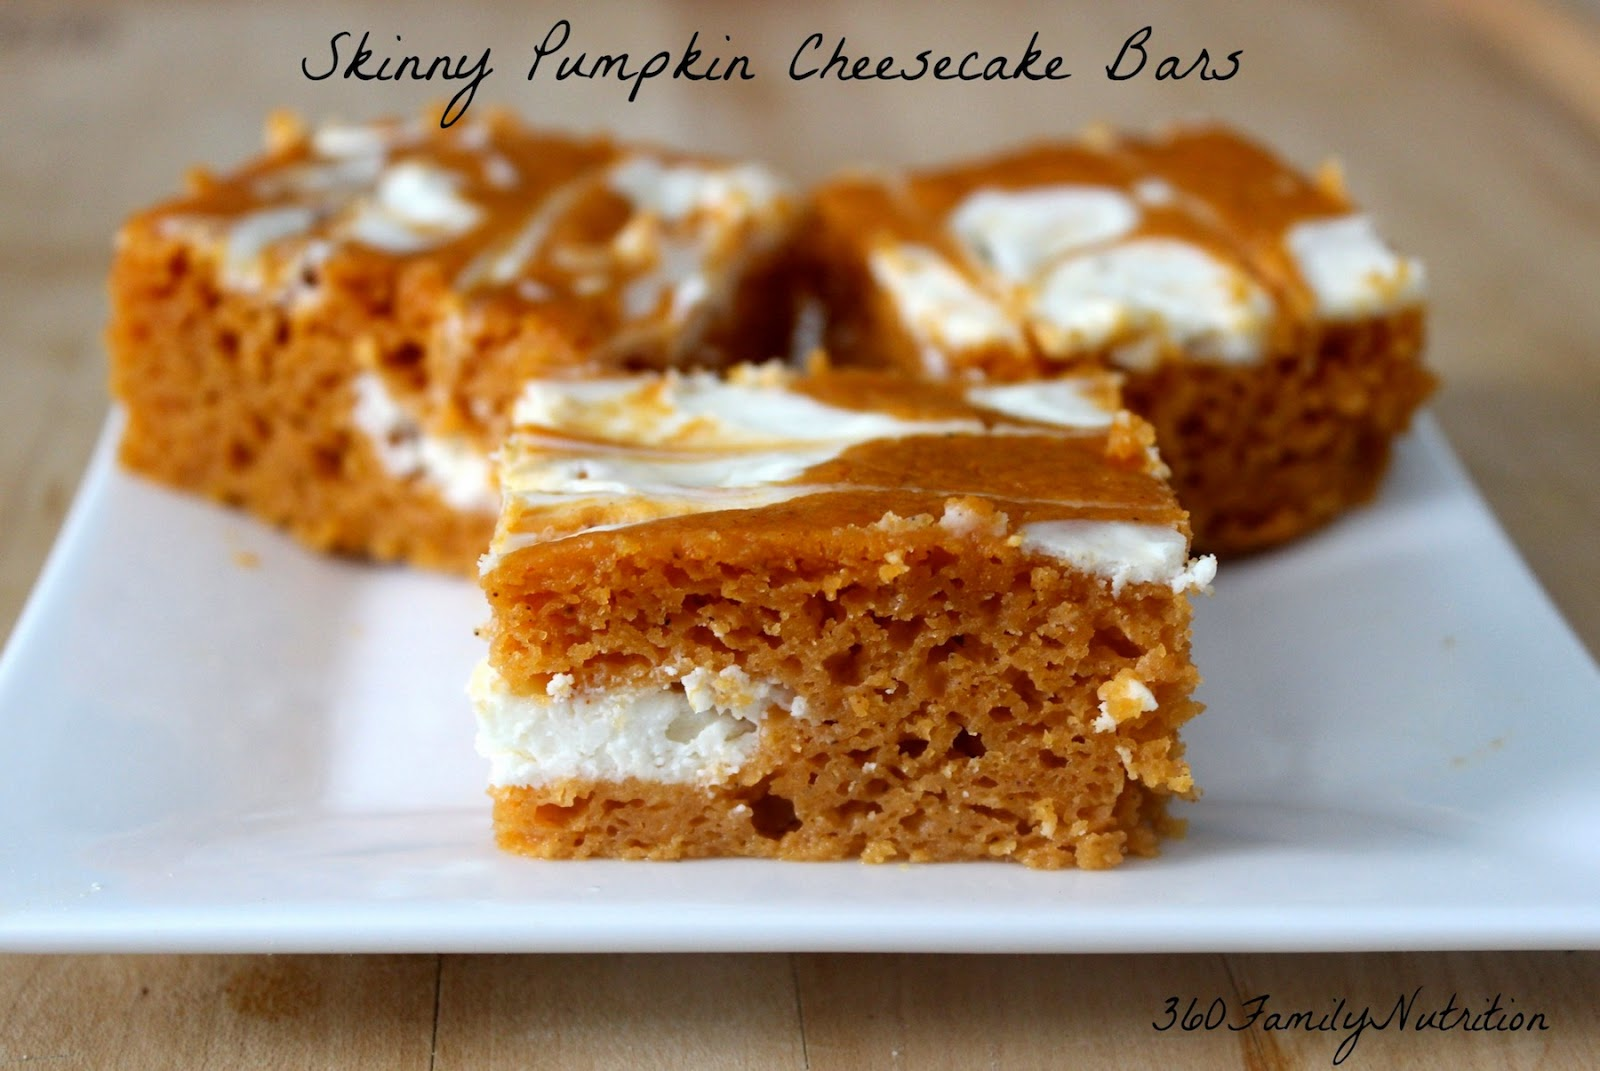 360FamilyNutrition: Skinny Pumpkin Cheesecake Bars